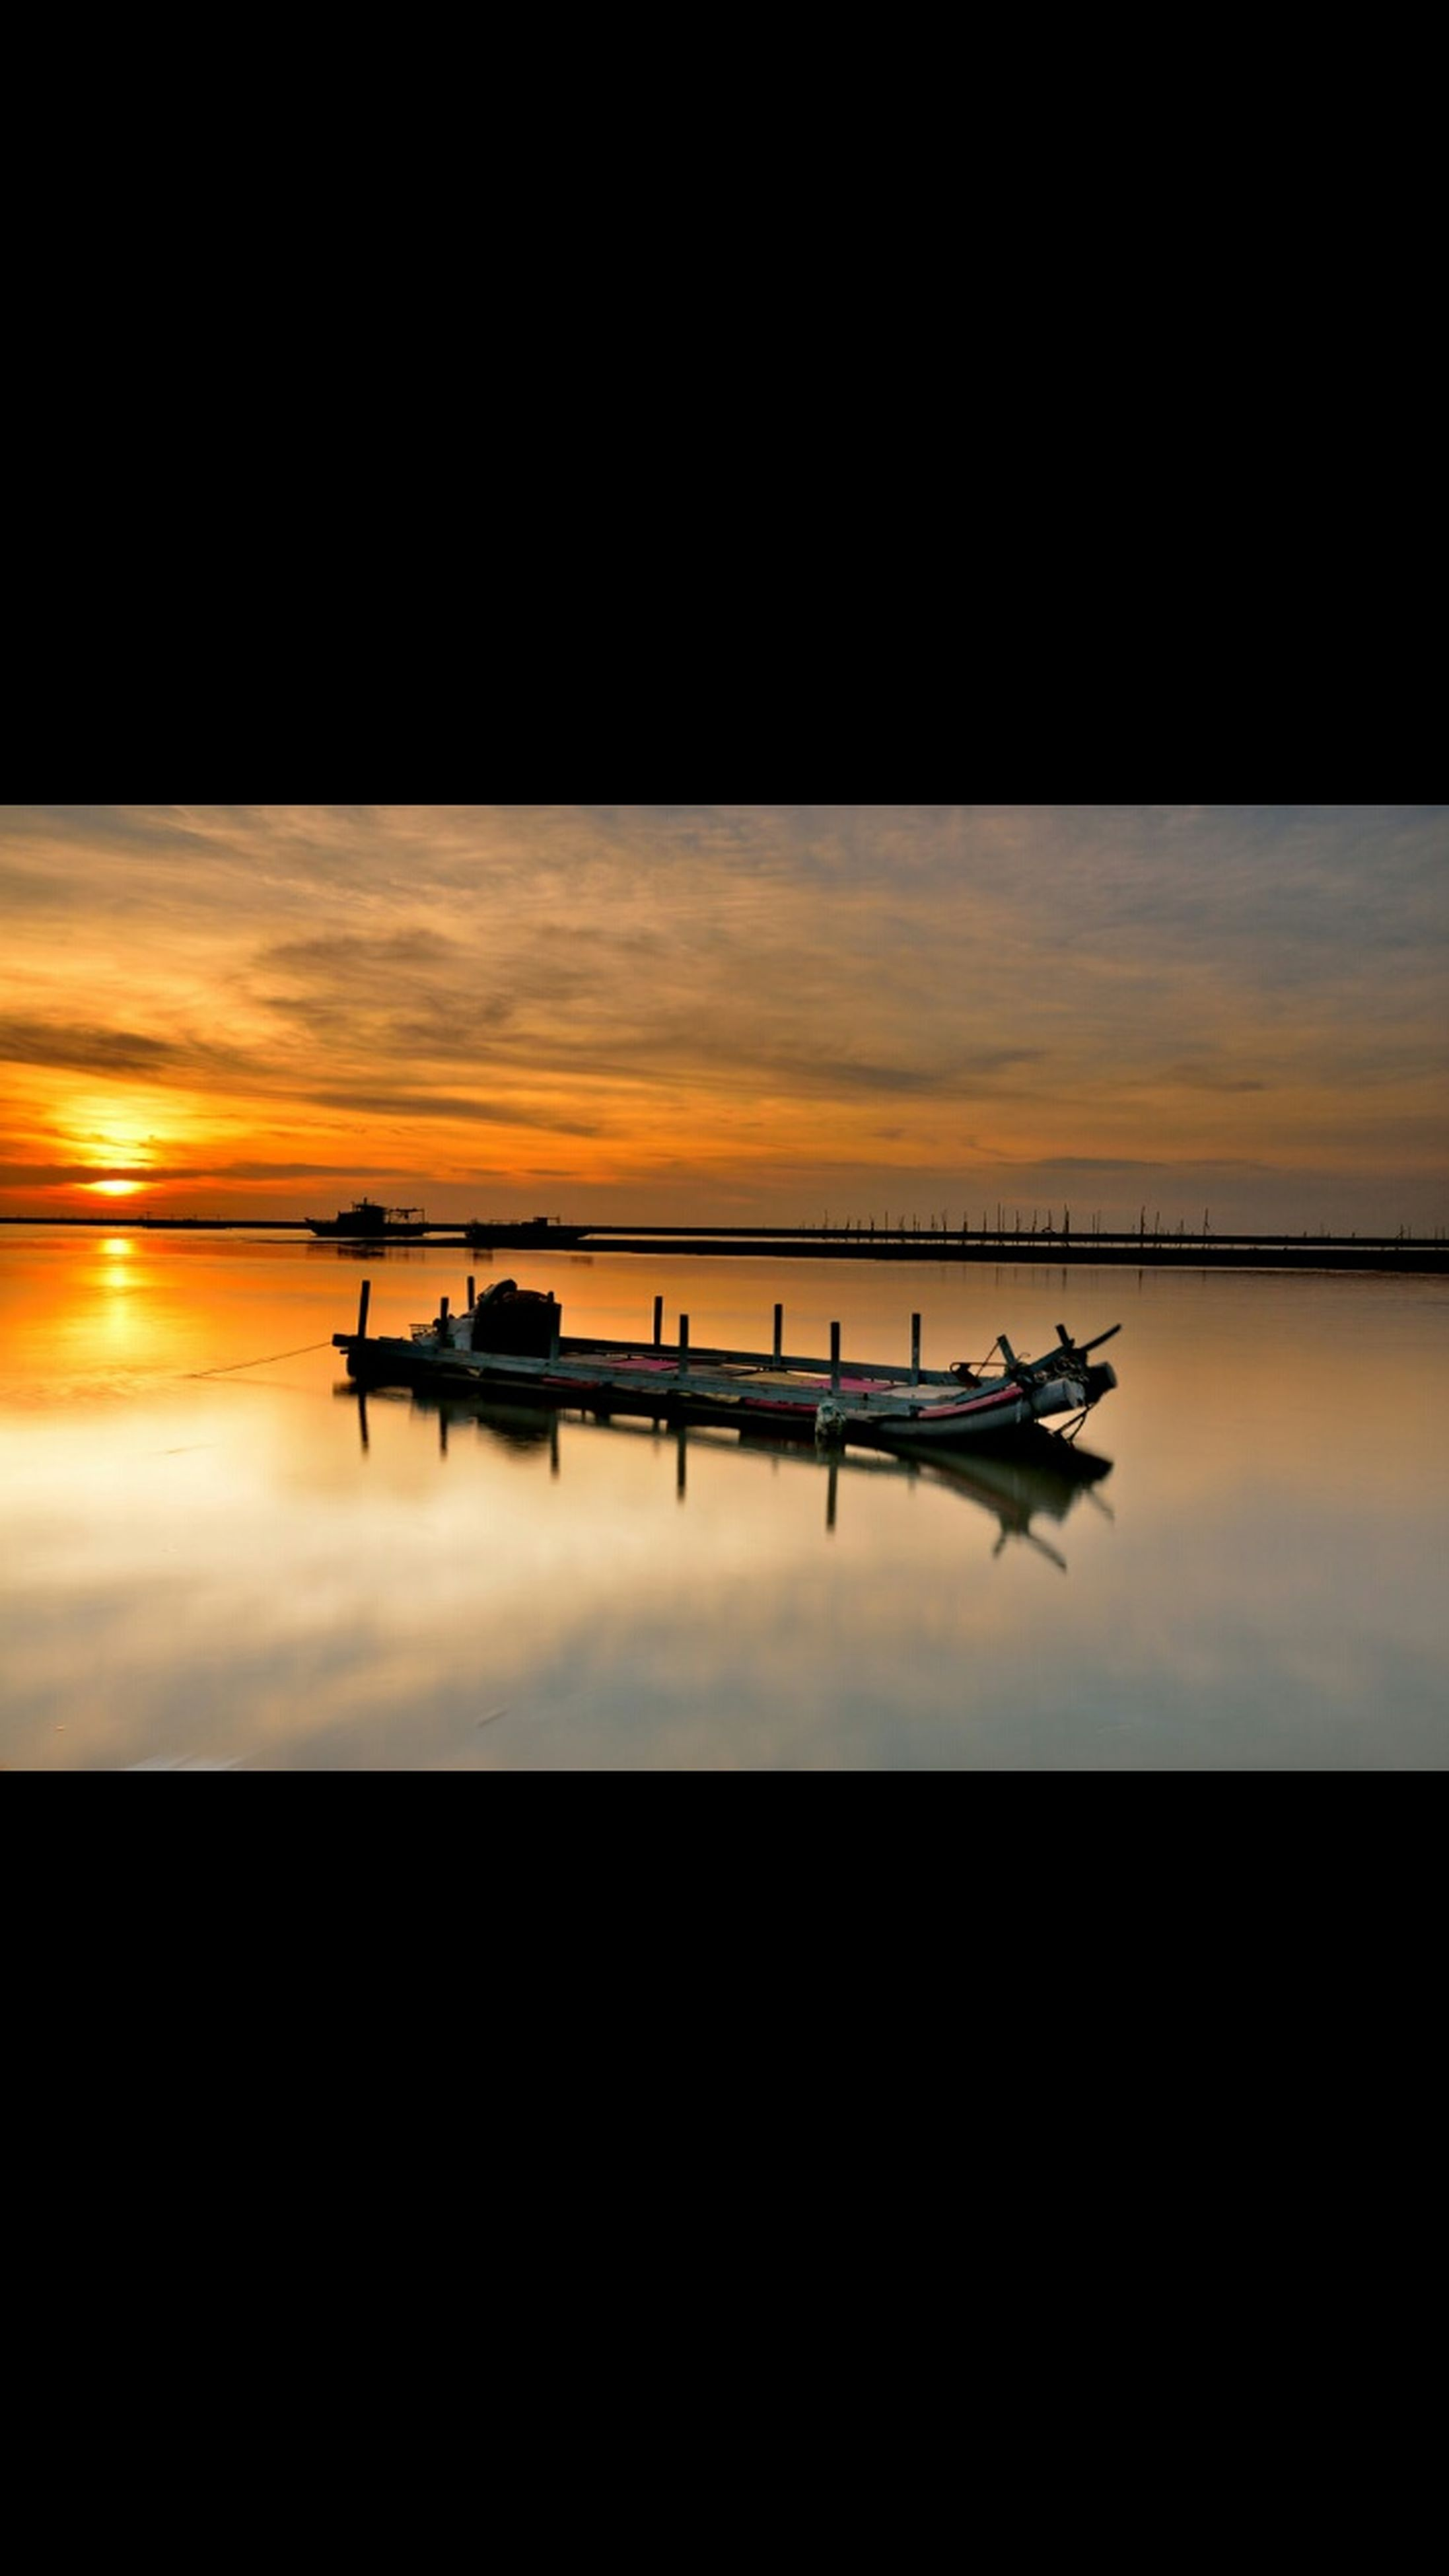 sunset, silhouette, transportation, orange color, water, sky, nautical vessel, mode of transport, sea, beauty in nature, tranquility, tranquil scene, scenics, boat, nature, reflection, copy space, dark, cloud - sky, dusk